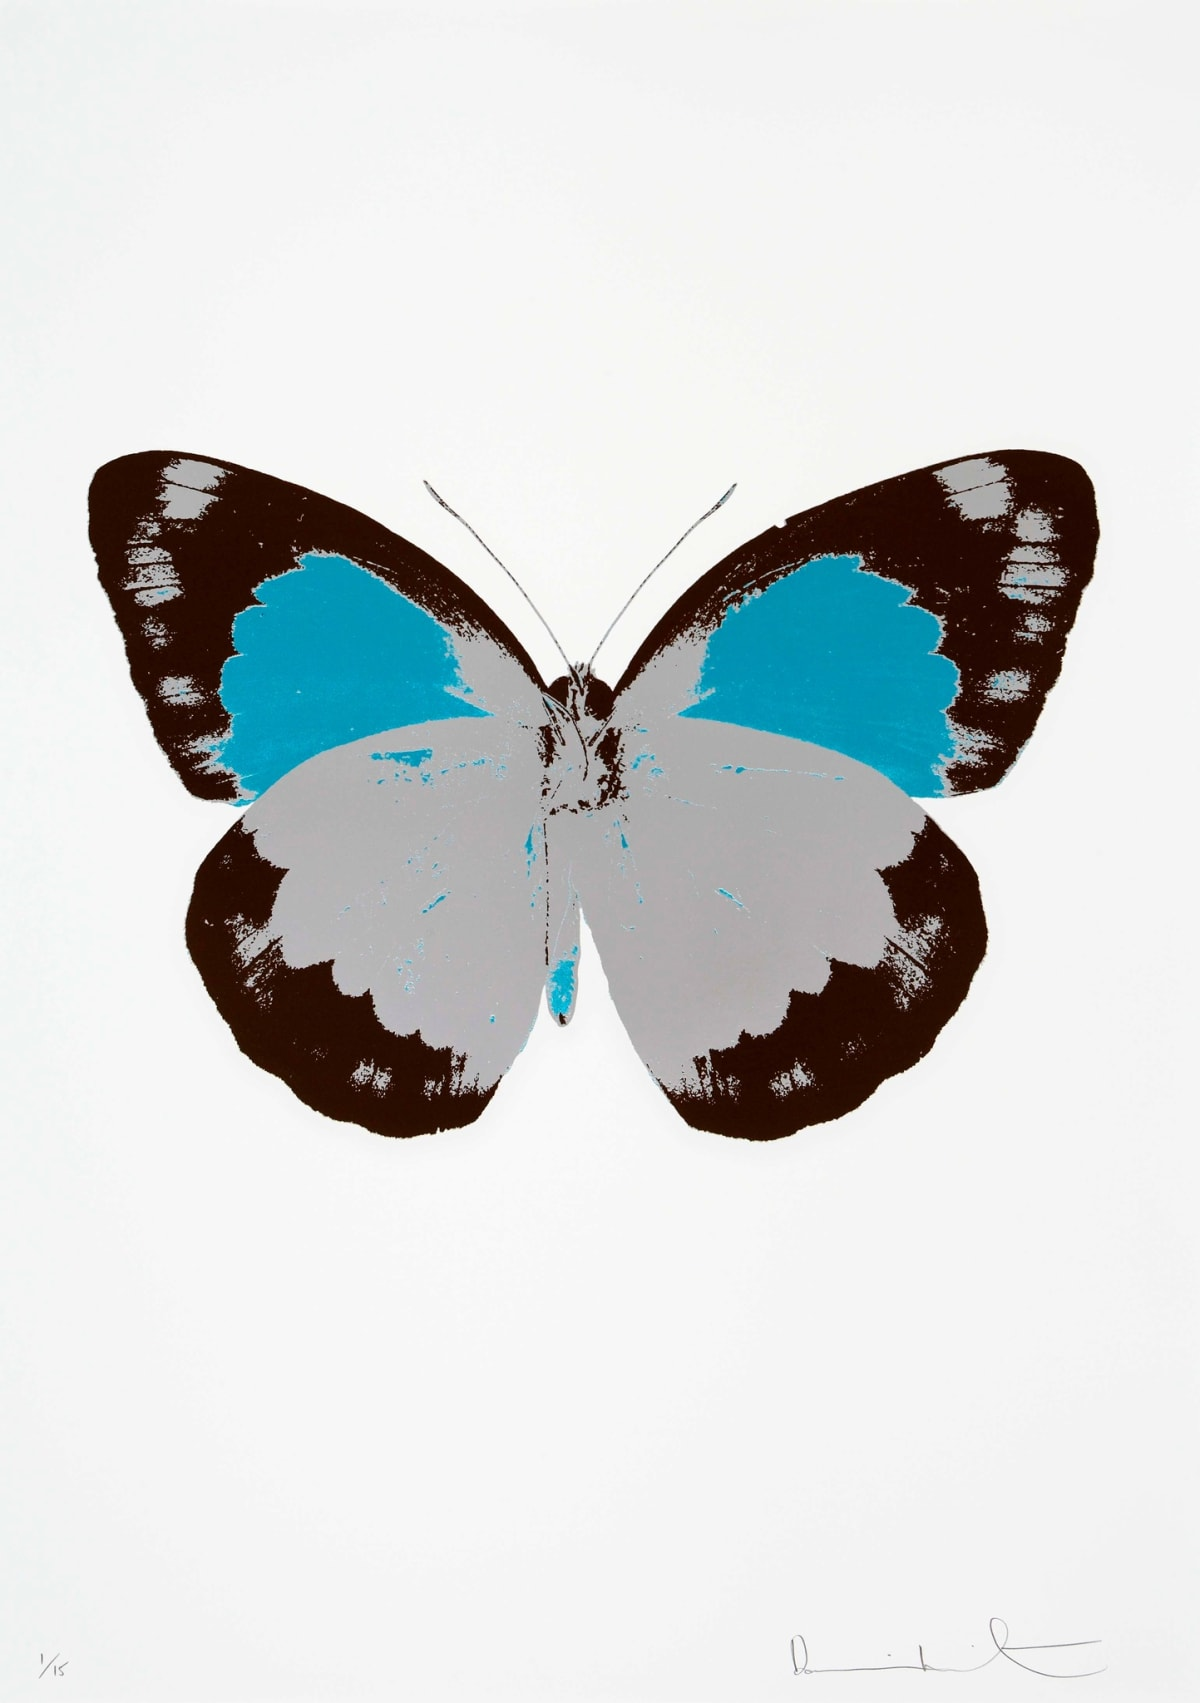 Damien Hirst The Souls II - Silver Gloss/Chocolate/Topaz, 2010 3 colour foil block on 300gsm Arches 88 archival paper. Signed and numbered. Published by Paul Stolper and Other Criteria 72 x 51cm OC7881 / 658-64 Edition of 15